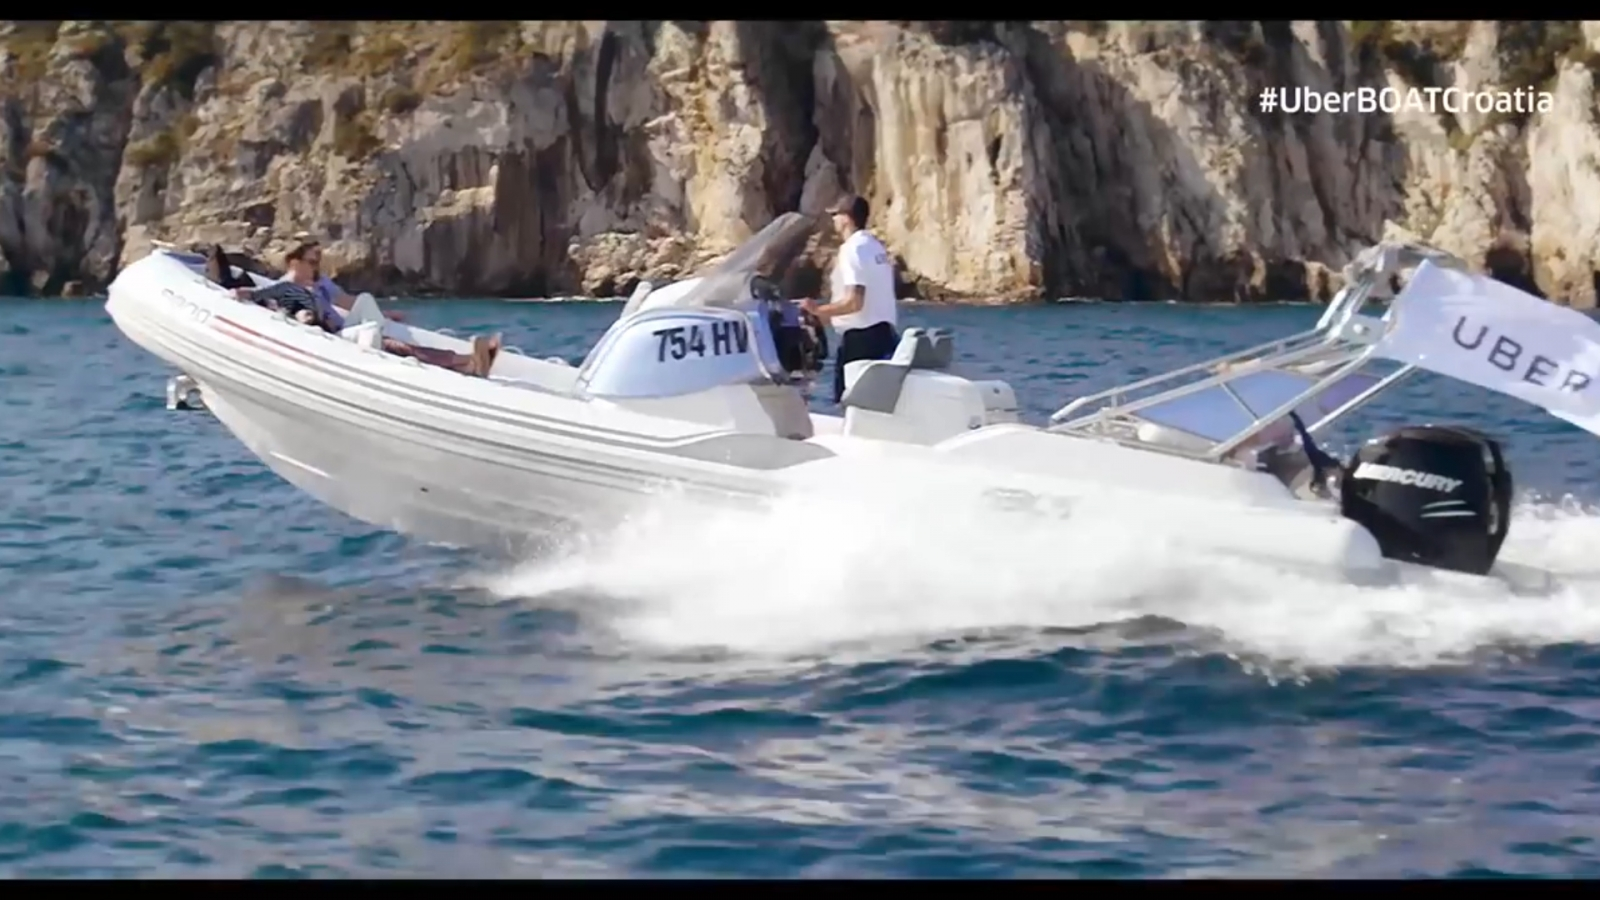 uberboat-setup-in-croatia-for-island-hoppers